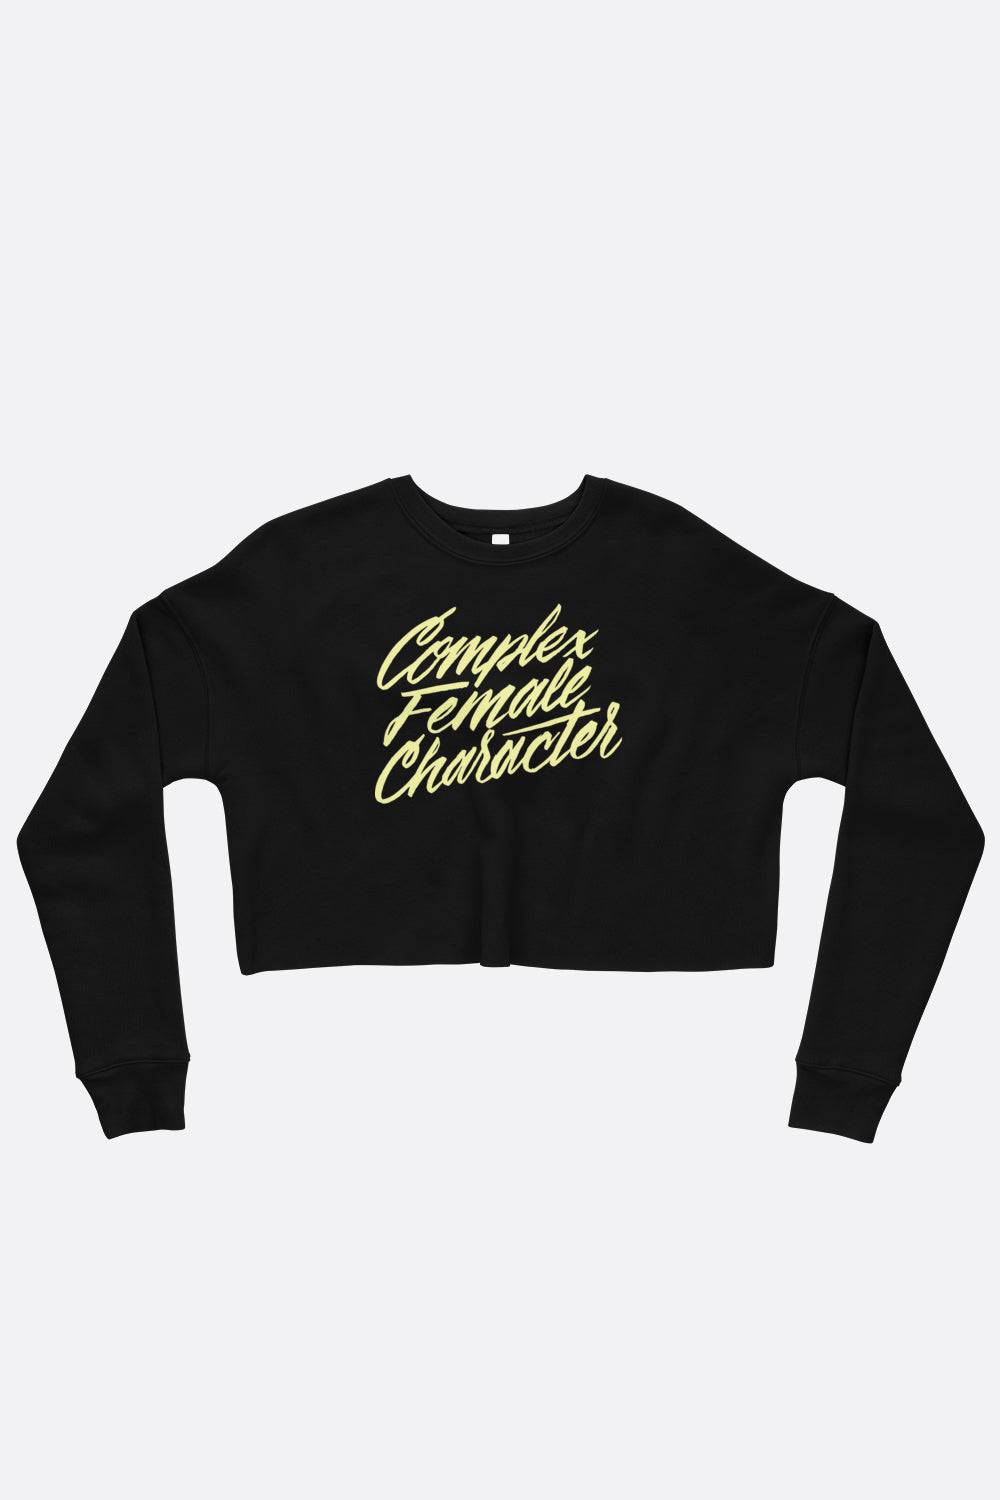 Complex Female Character Crop Sweatshirt